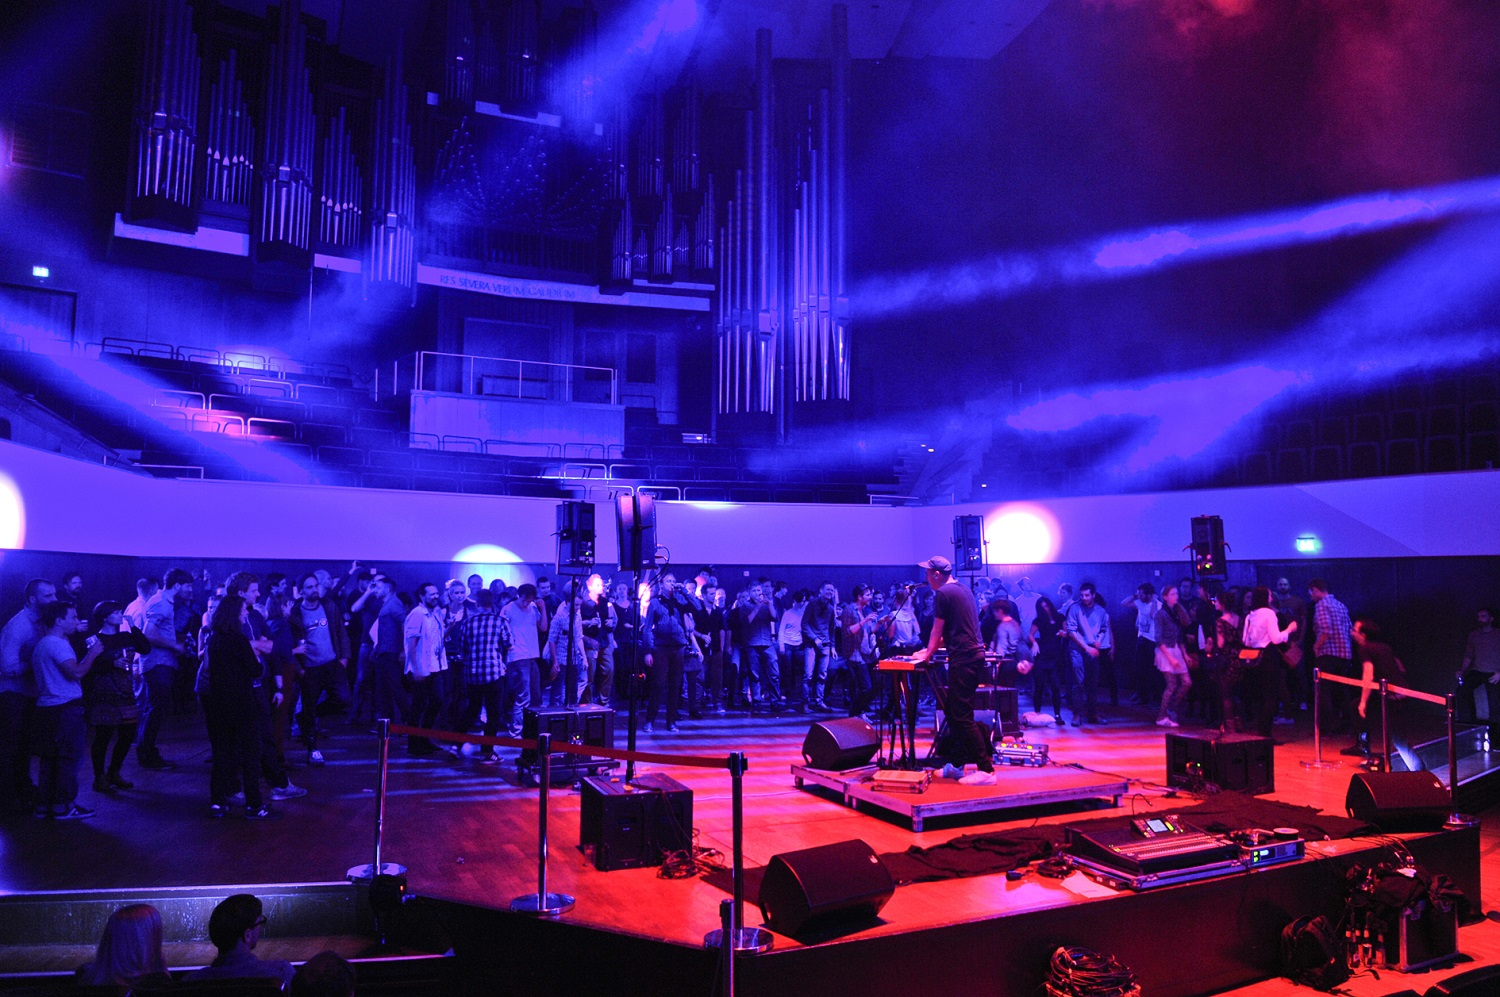 The Audio Invasion offers a full audio-visual experience in a great venue